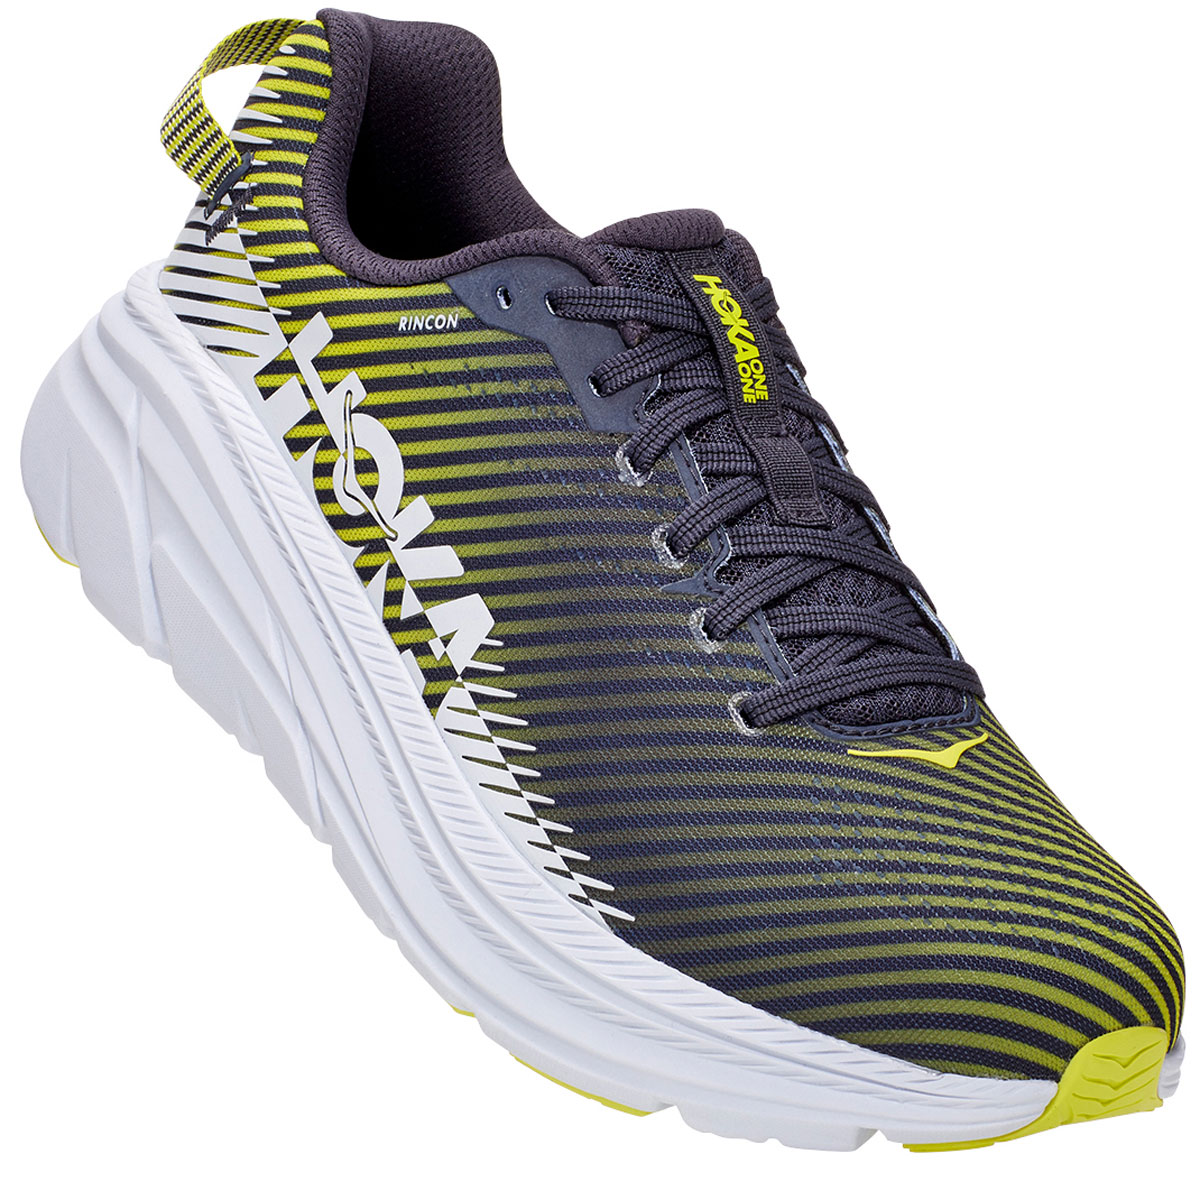 Men's Hoka One One Rincon 2 Running Shoe - Color: Odyssey Grey - Size: 10 - Width: Regular, Odyssey Grey, large, image 4